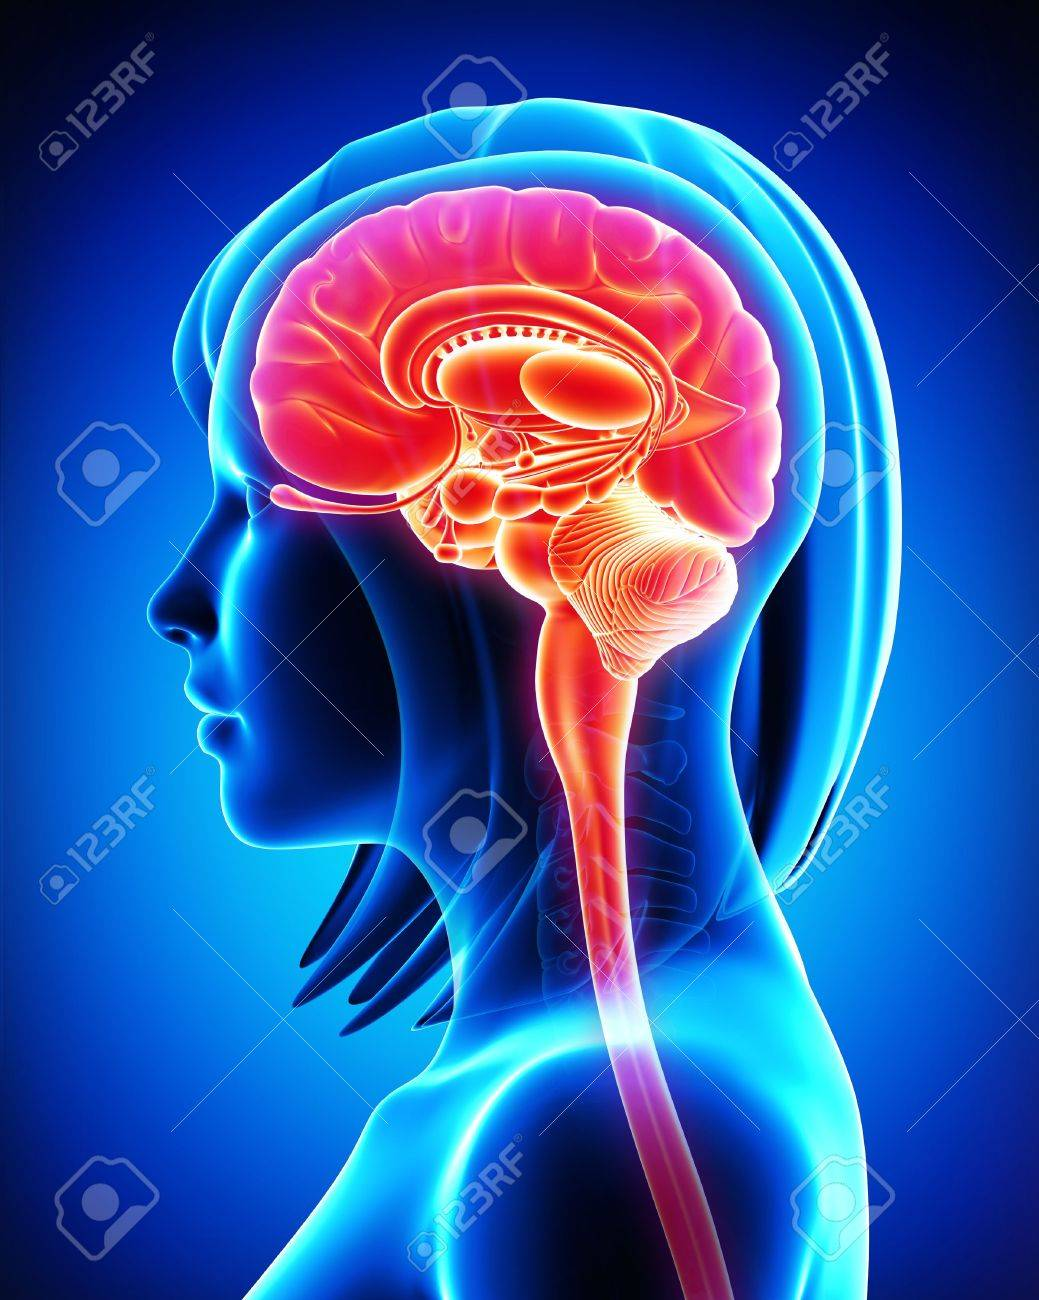 Brain Anatomy - Cross Section Stock Photo, Picture And Royalty Free ...